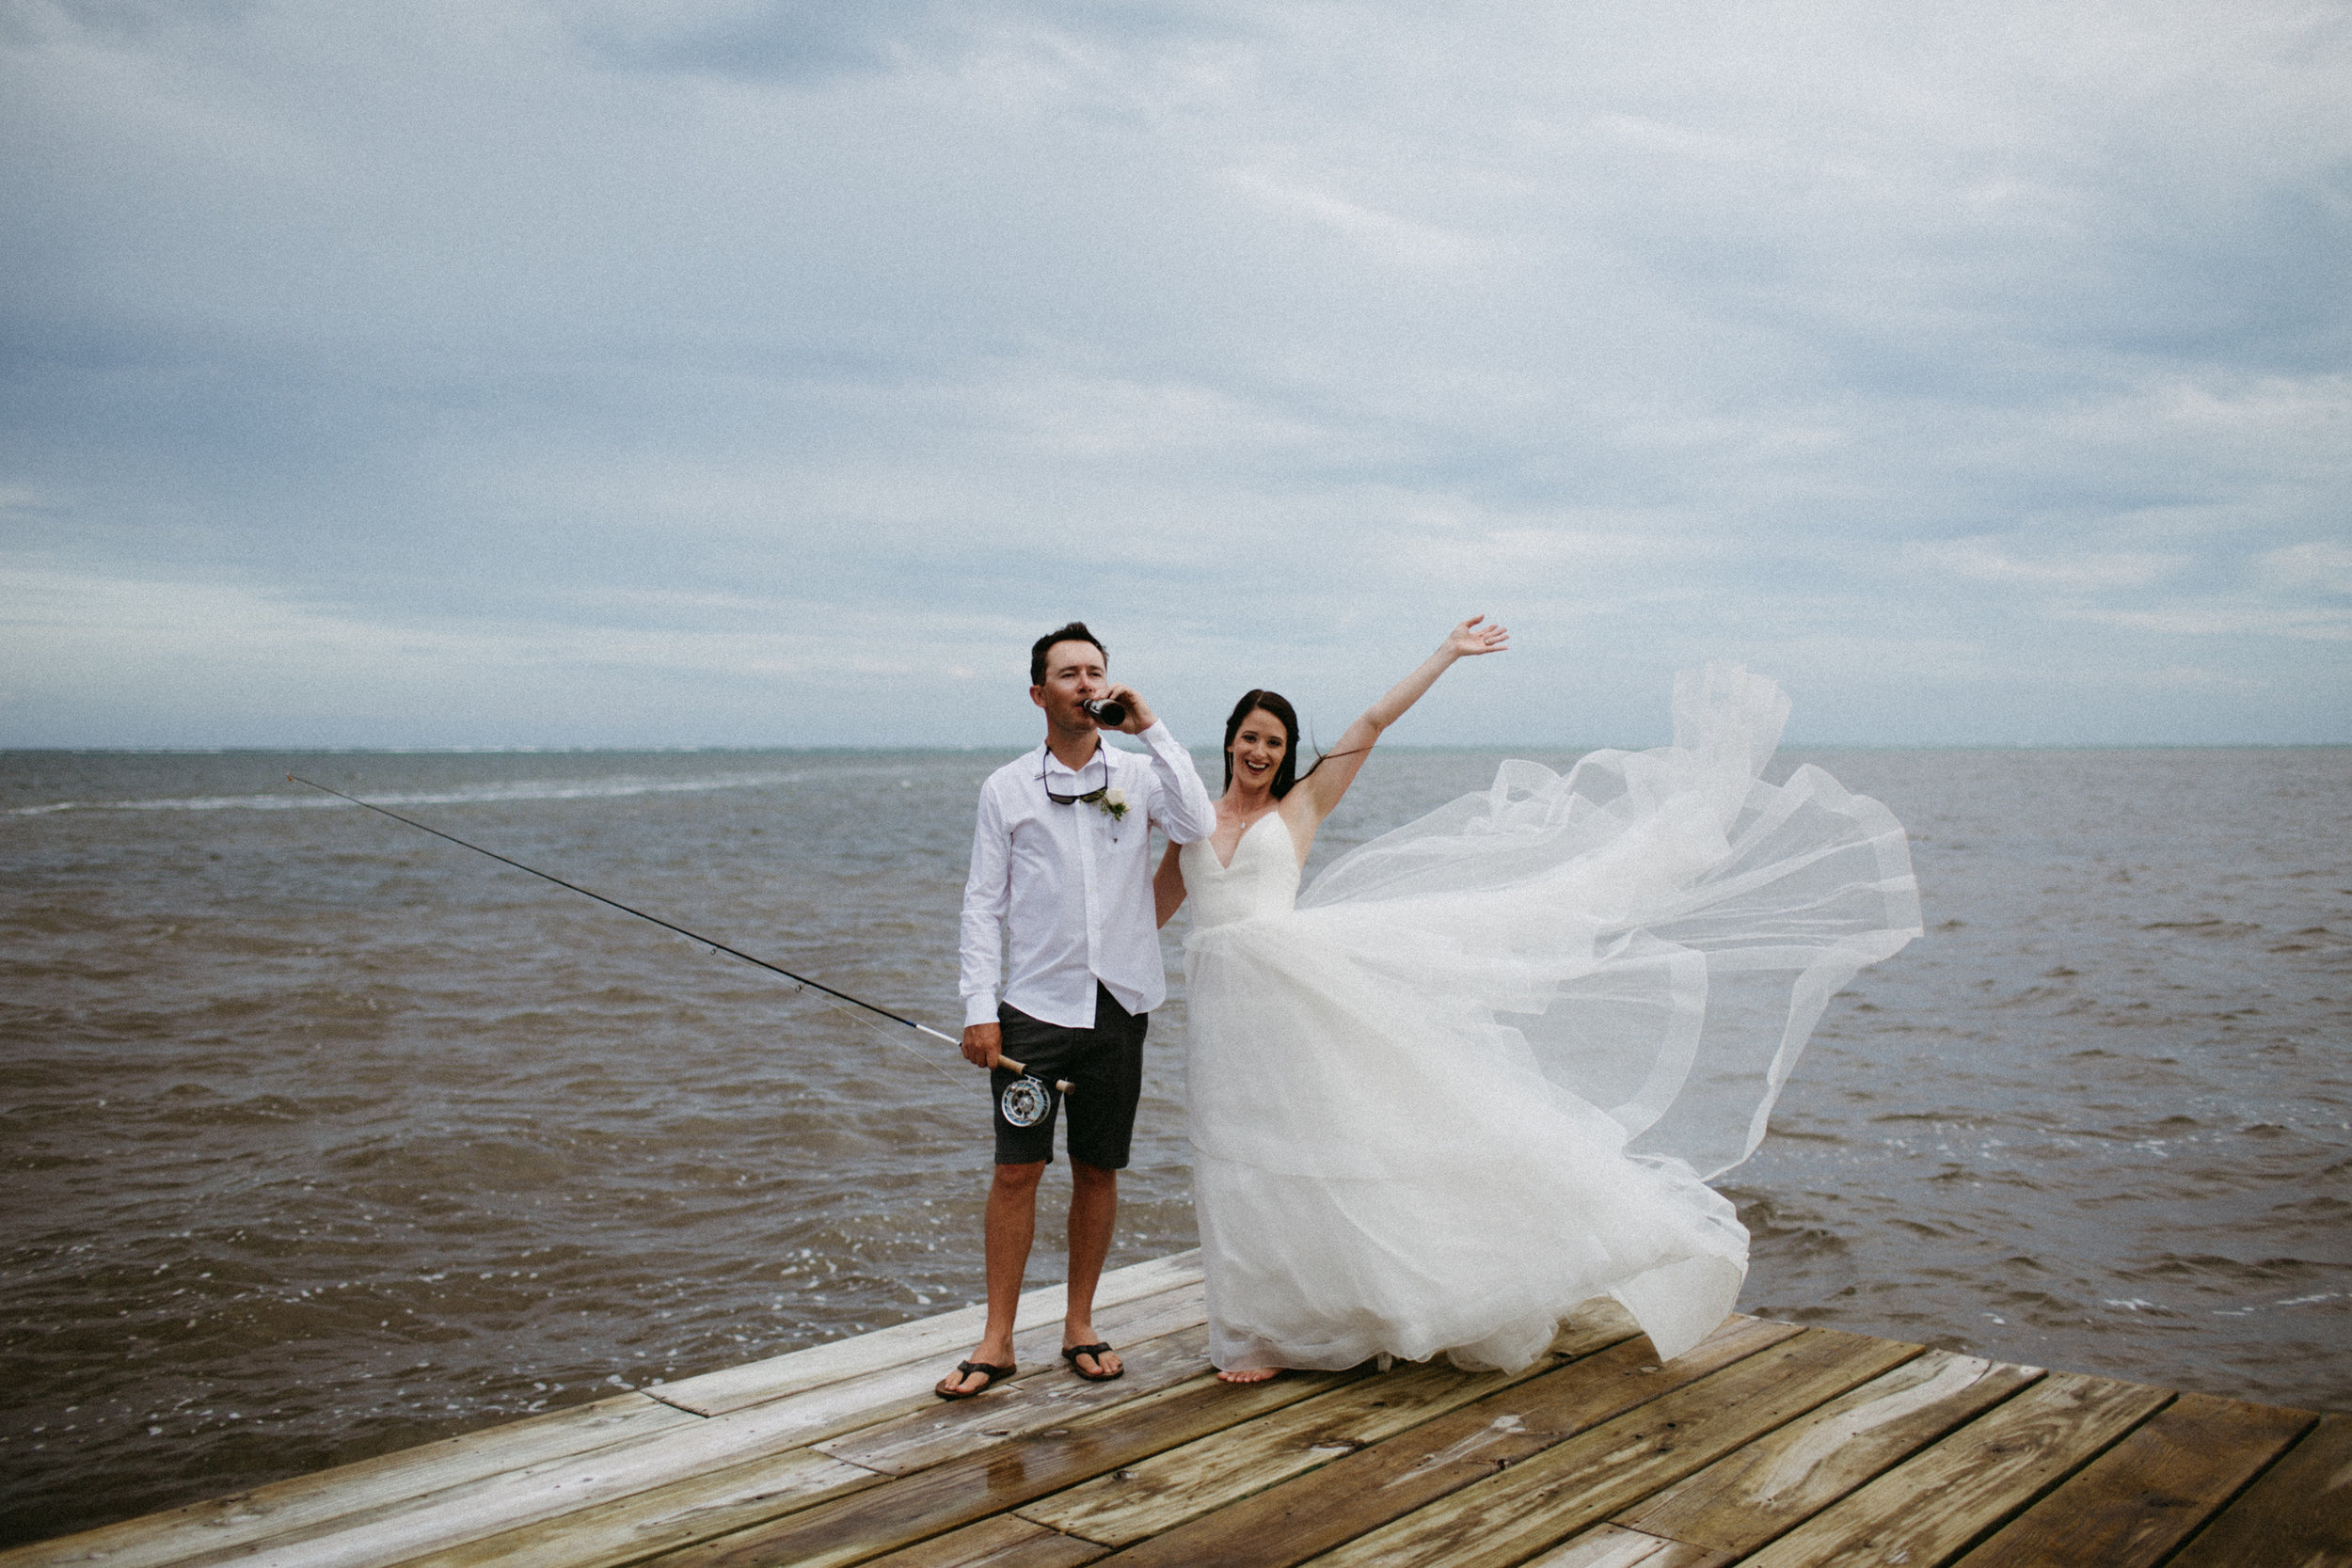 el-pescador-wedding-christinemariephoto-1.jpg